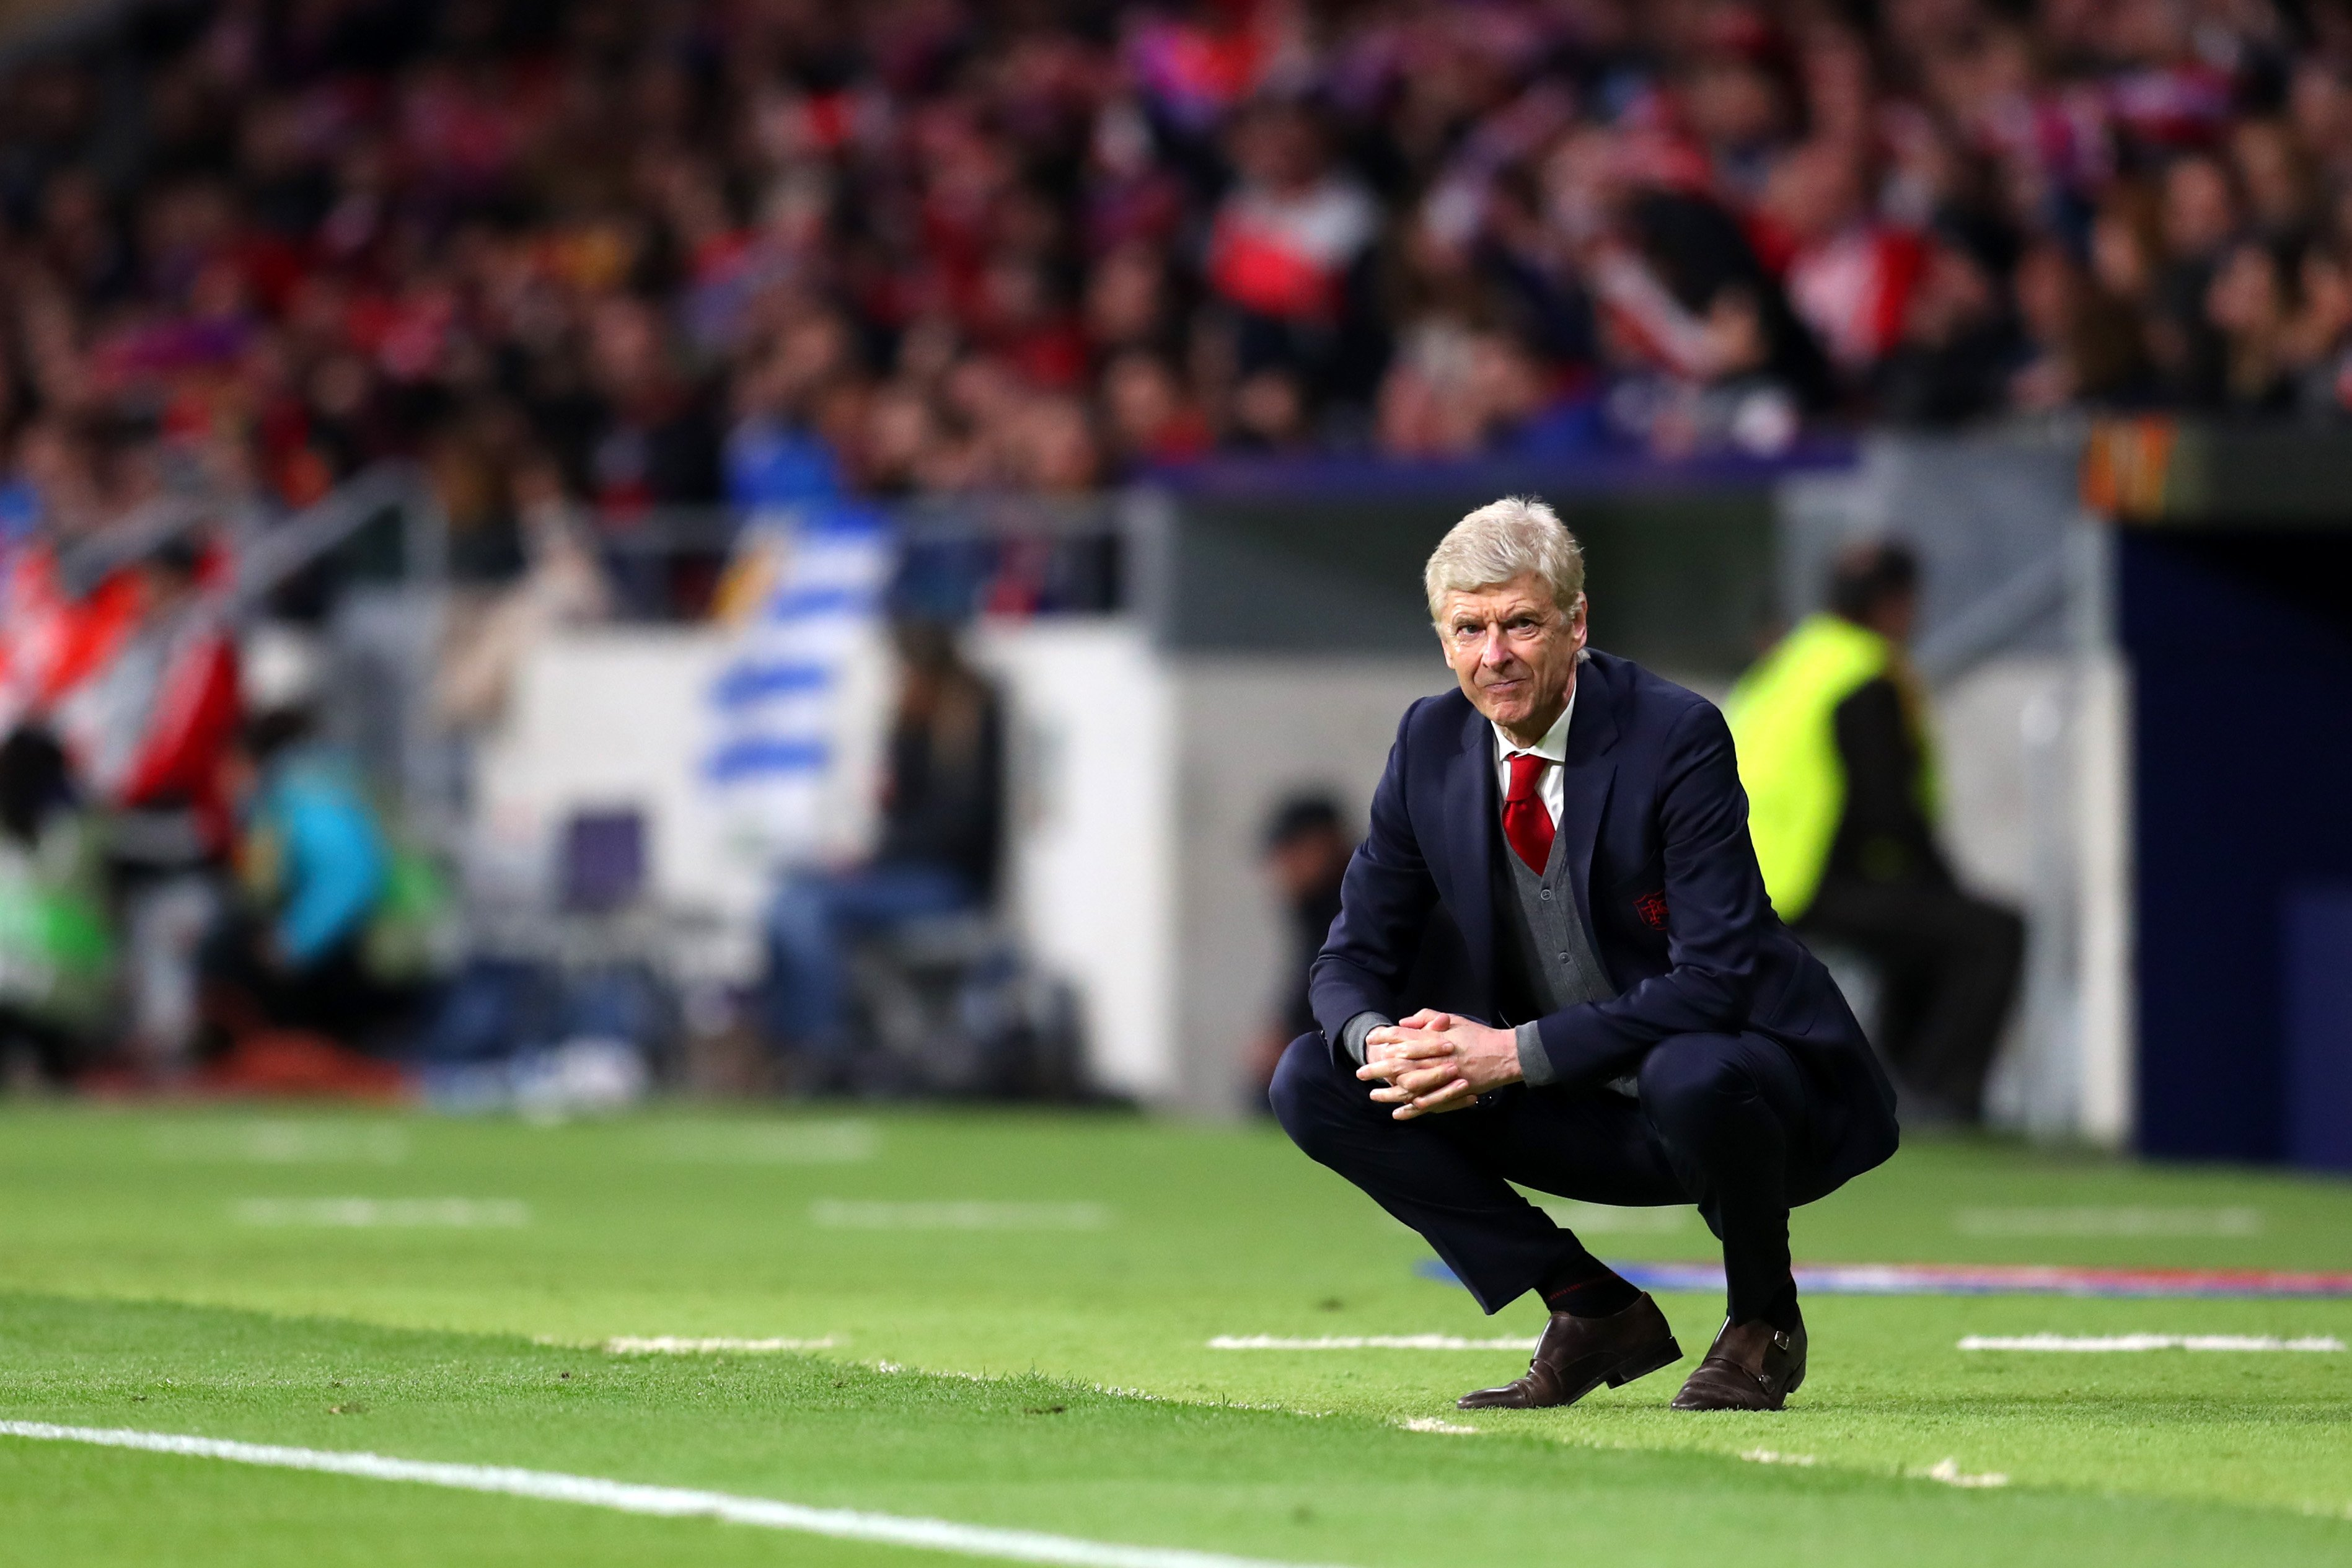 Europa League: Wenger Rues Arsenal's Wastefulness In Defeat To Atletico Madrid